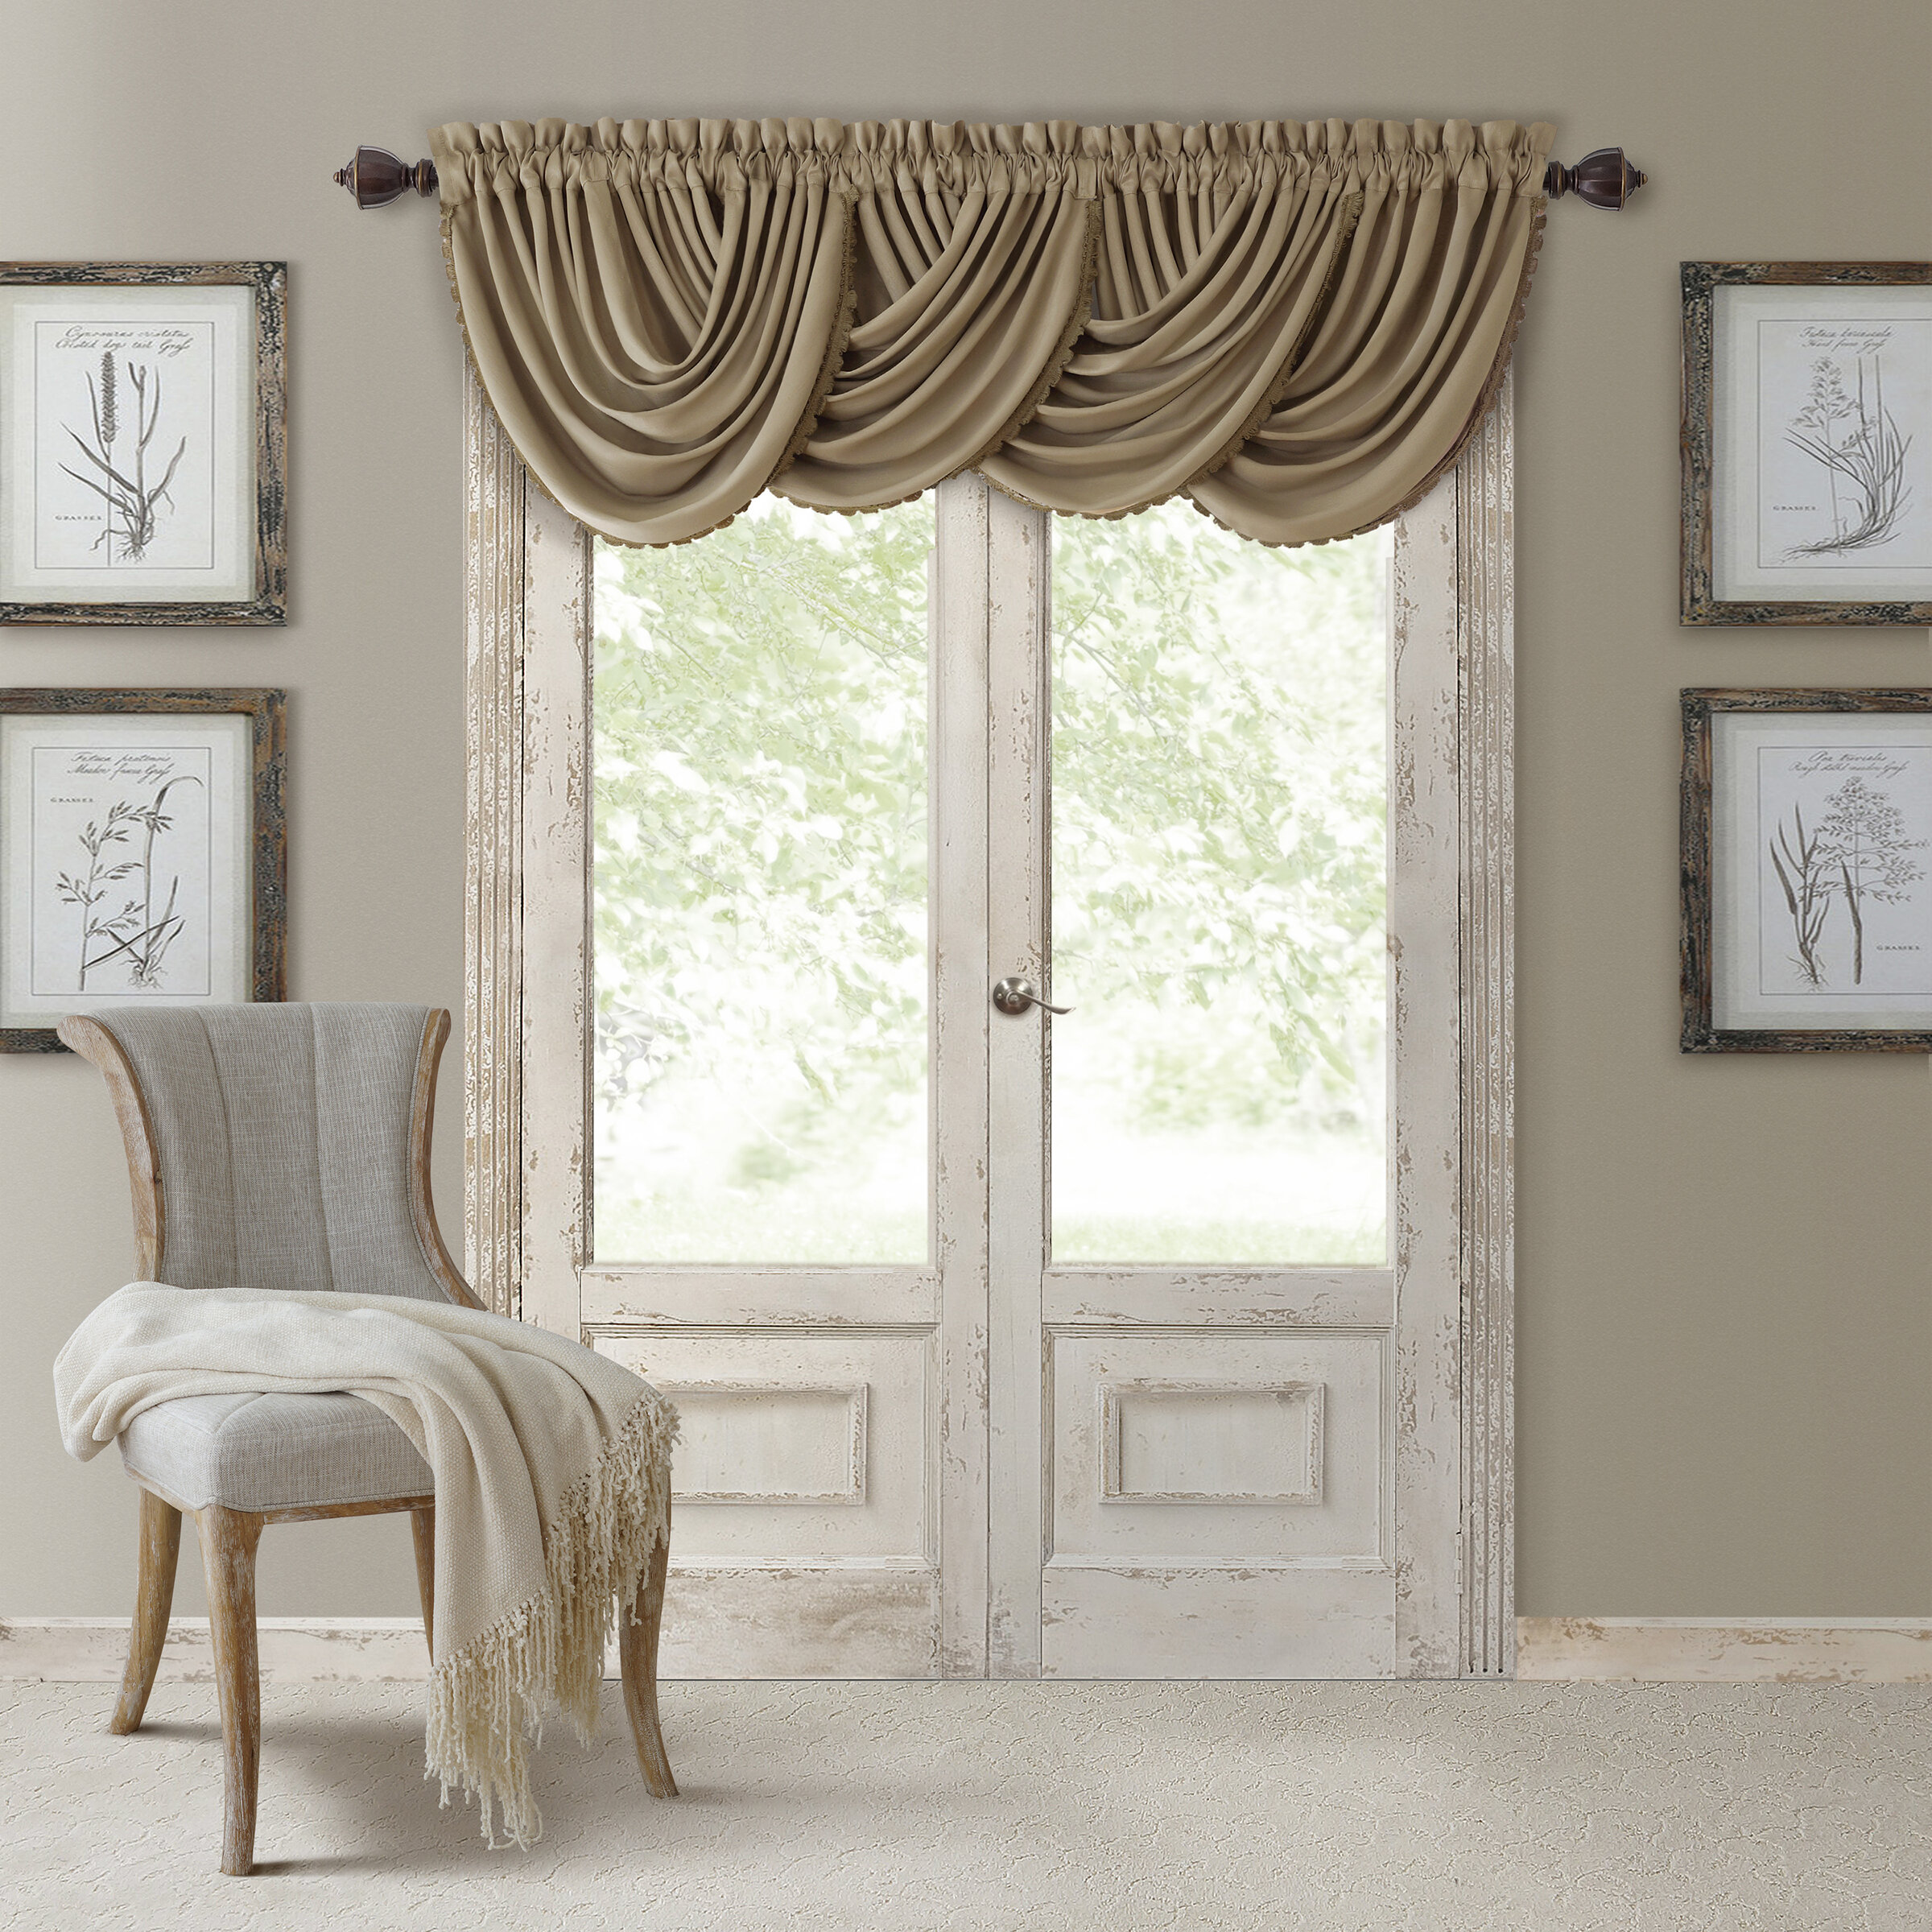 for valance inspirations room decor bedroom trends also dining beautiful living valances ideas curtain attractive curtains furniture